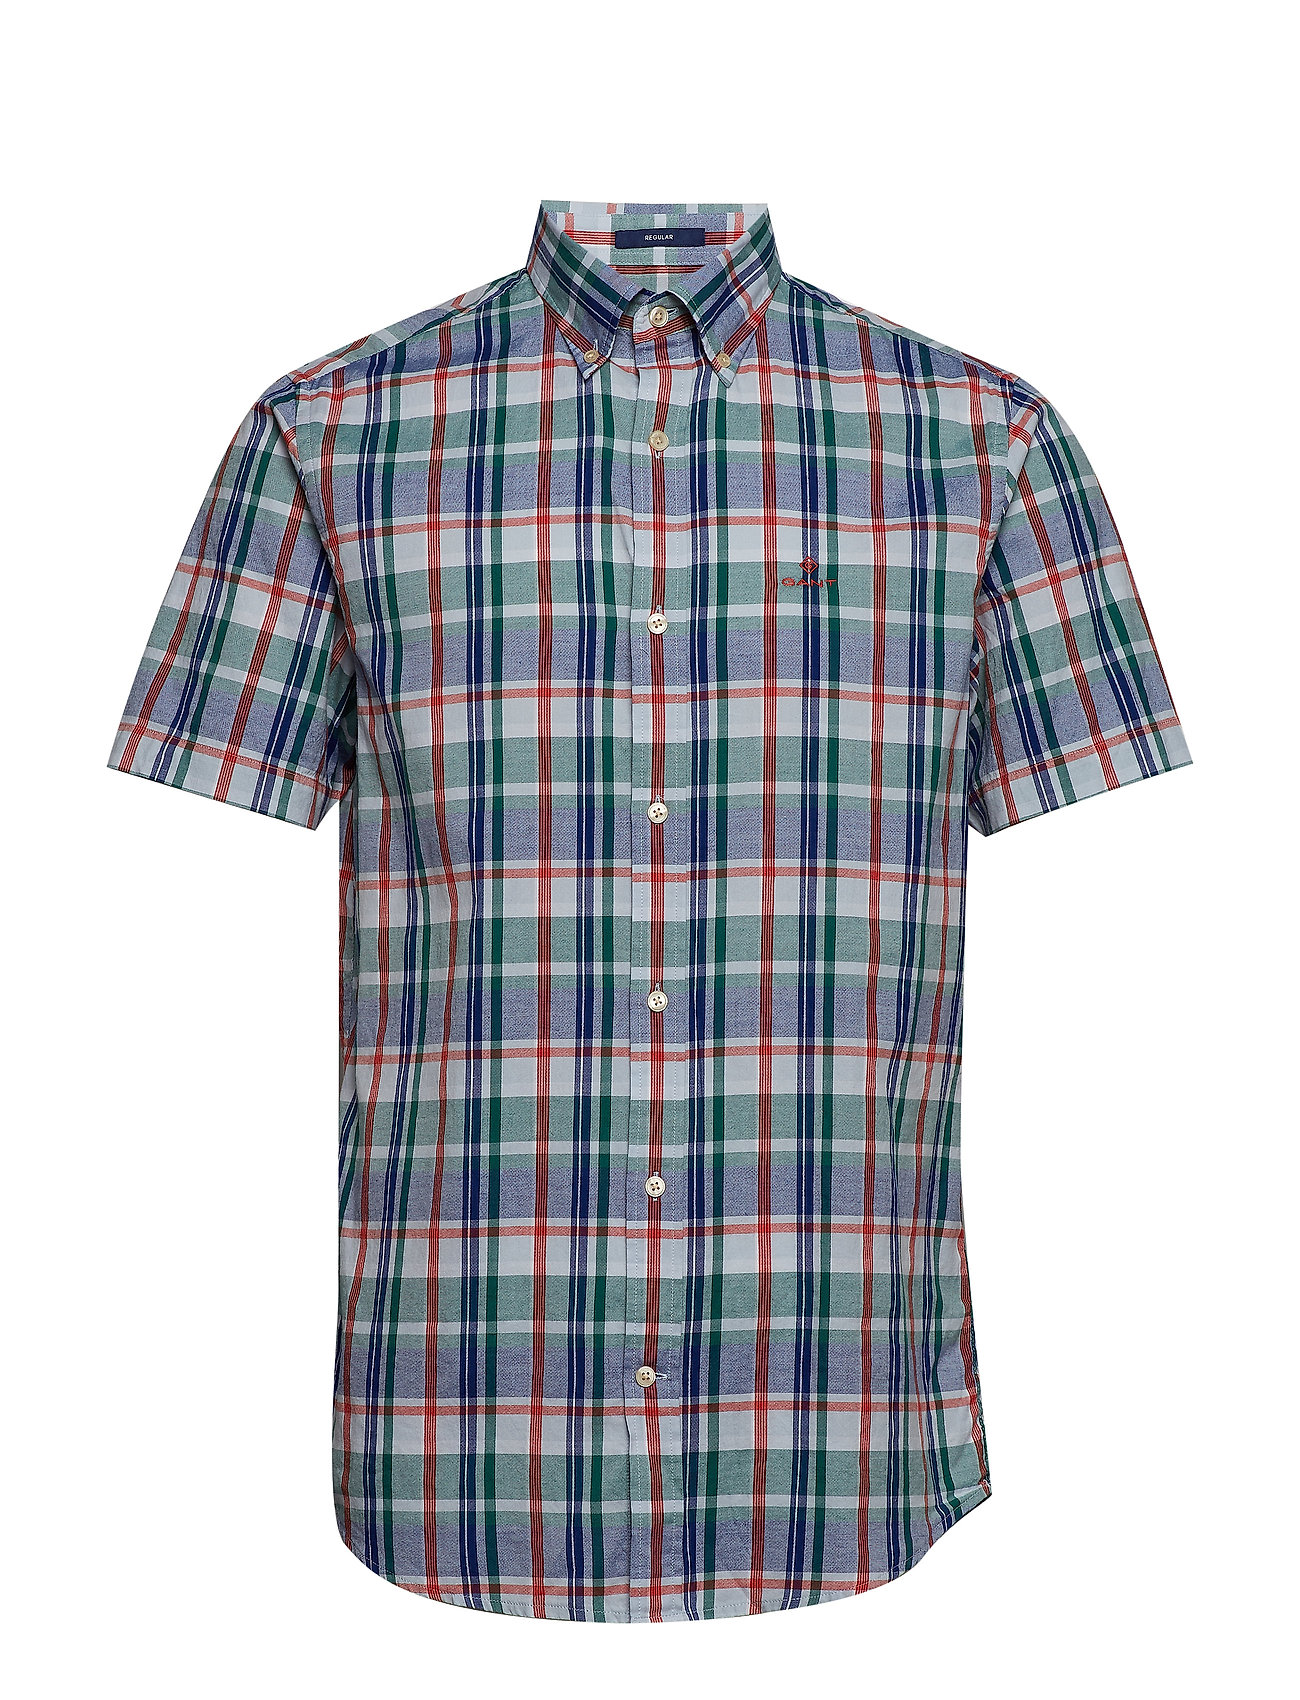 Gant D1. OXFORD PLAID REG BD SS - IVY GREEN